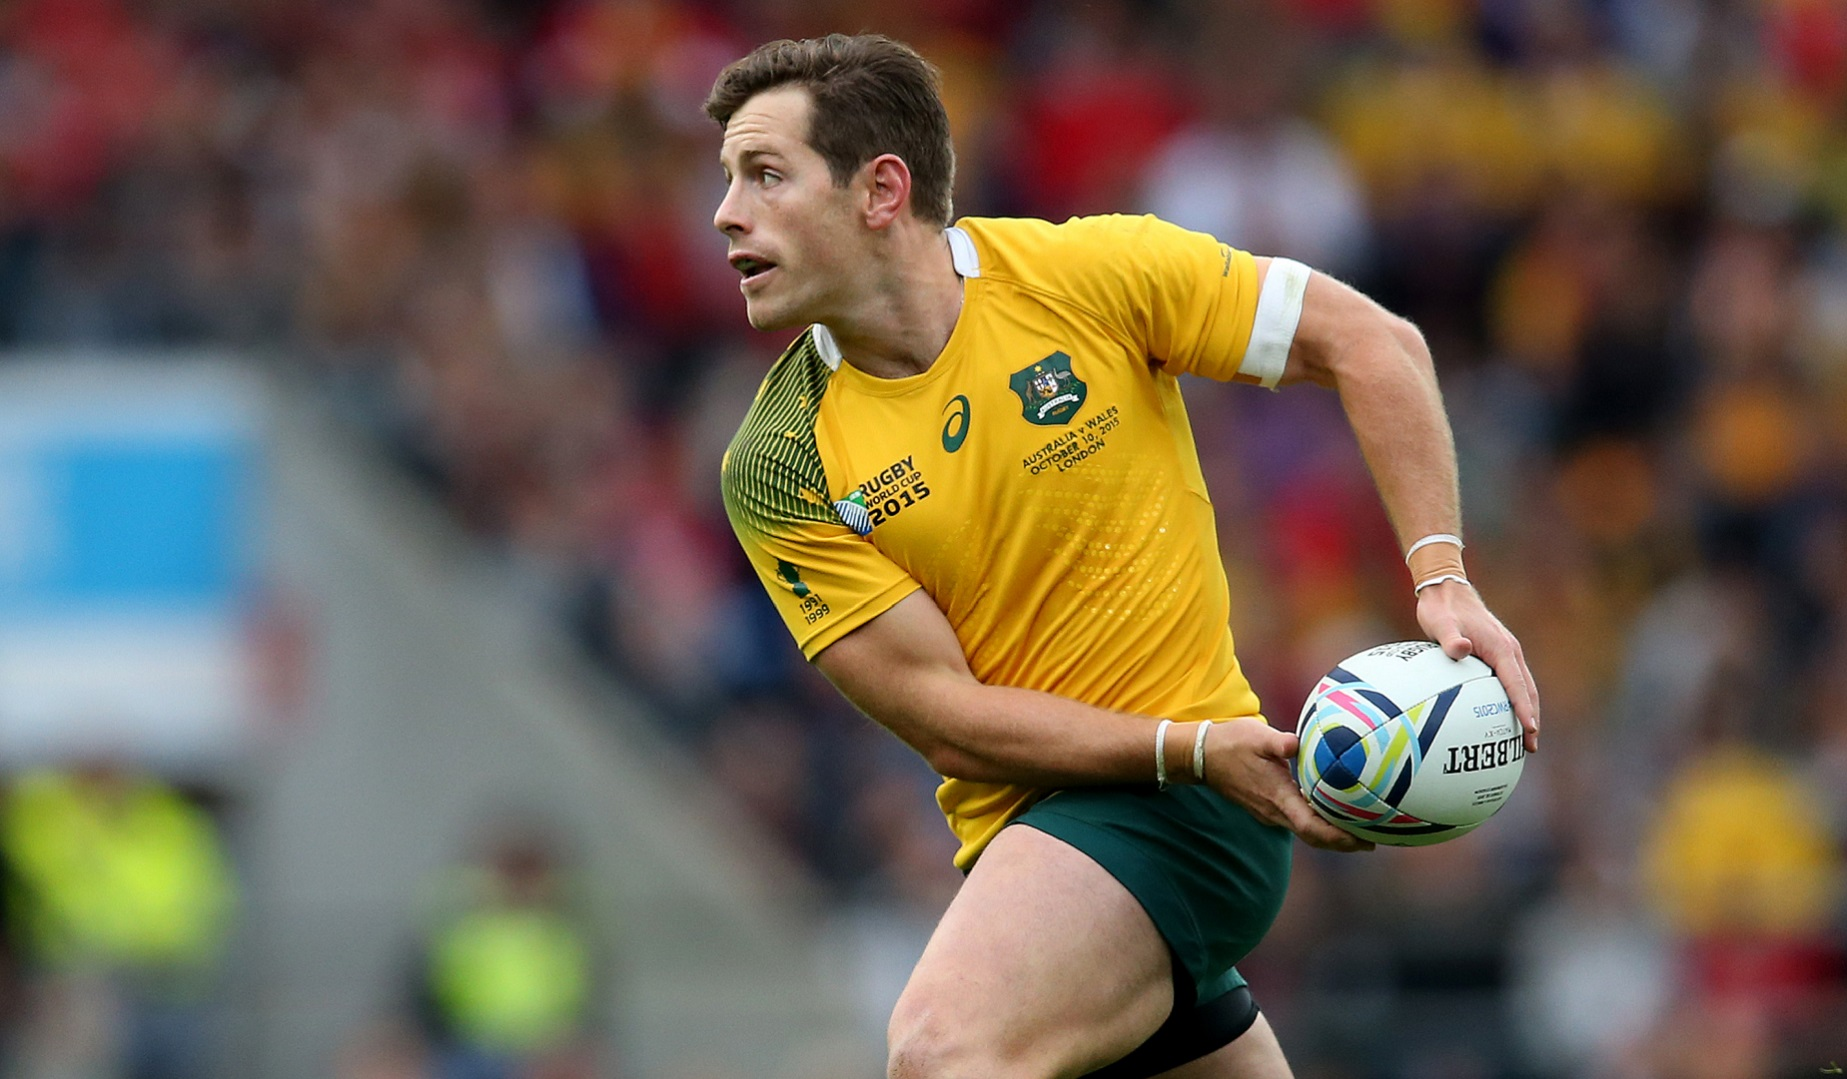 LionsWatch: Australia secure comfortable win in opening November international